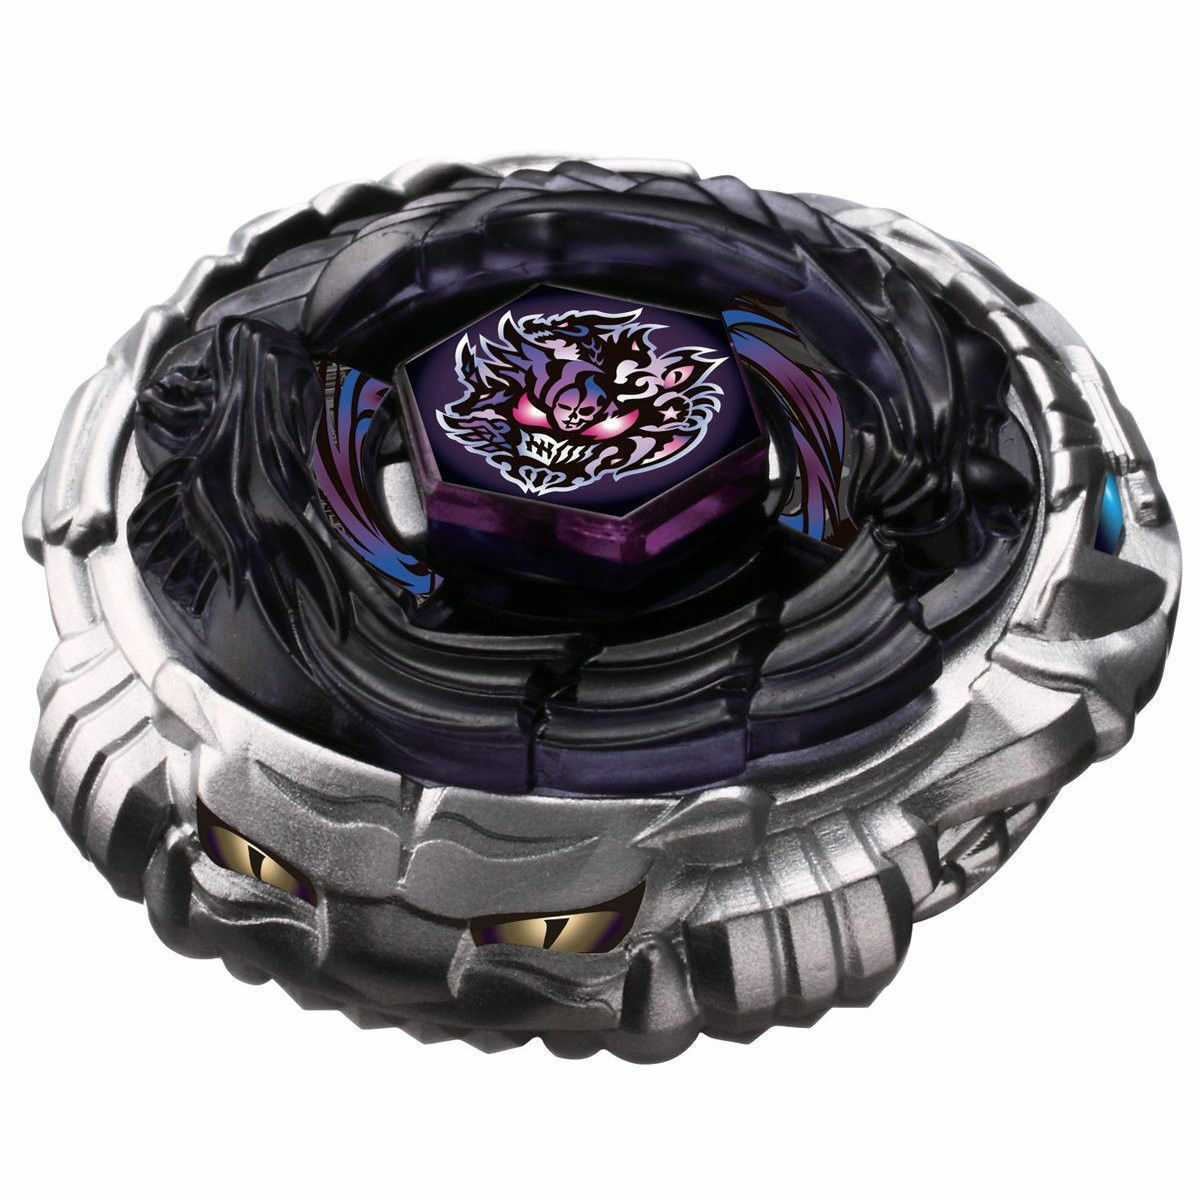 Top 10 Strongest Beyblades In The World